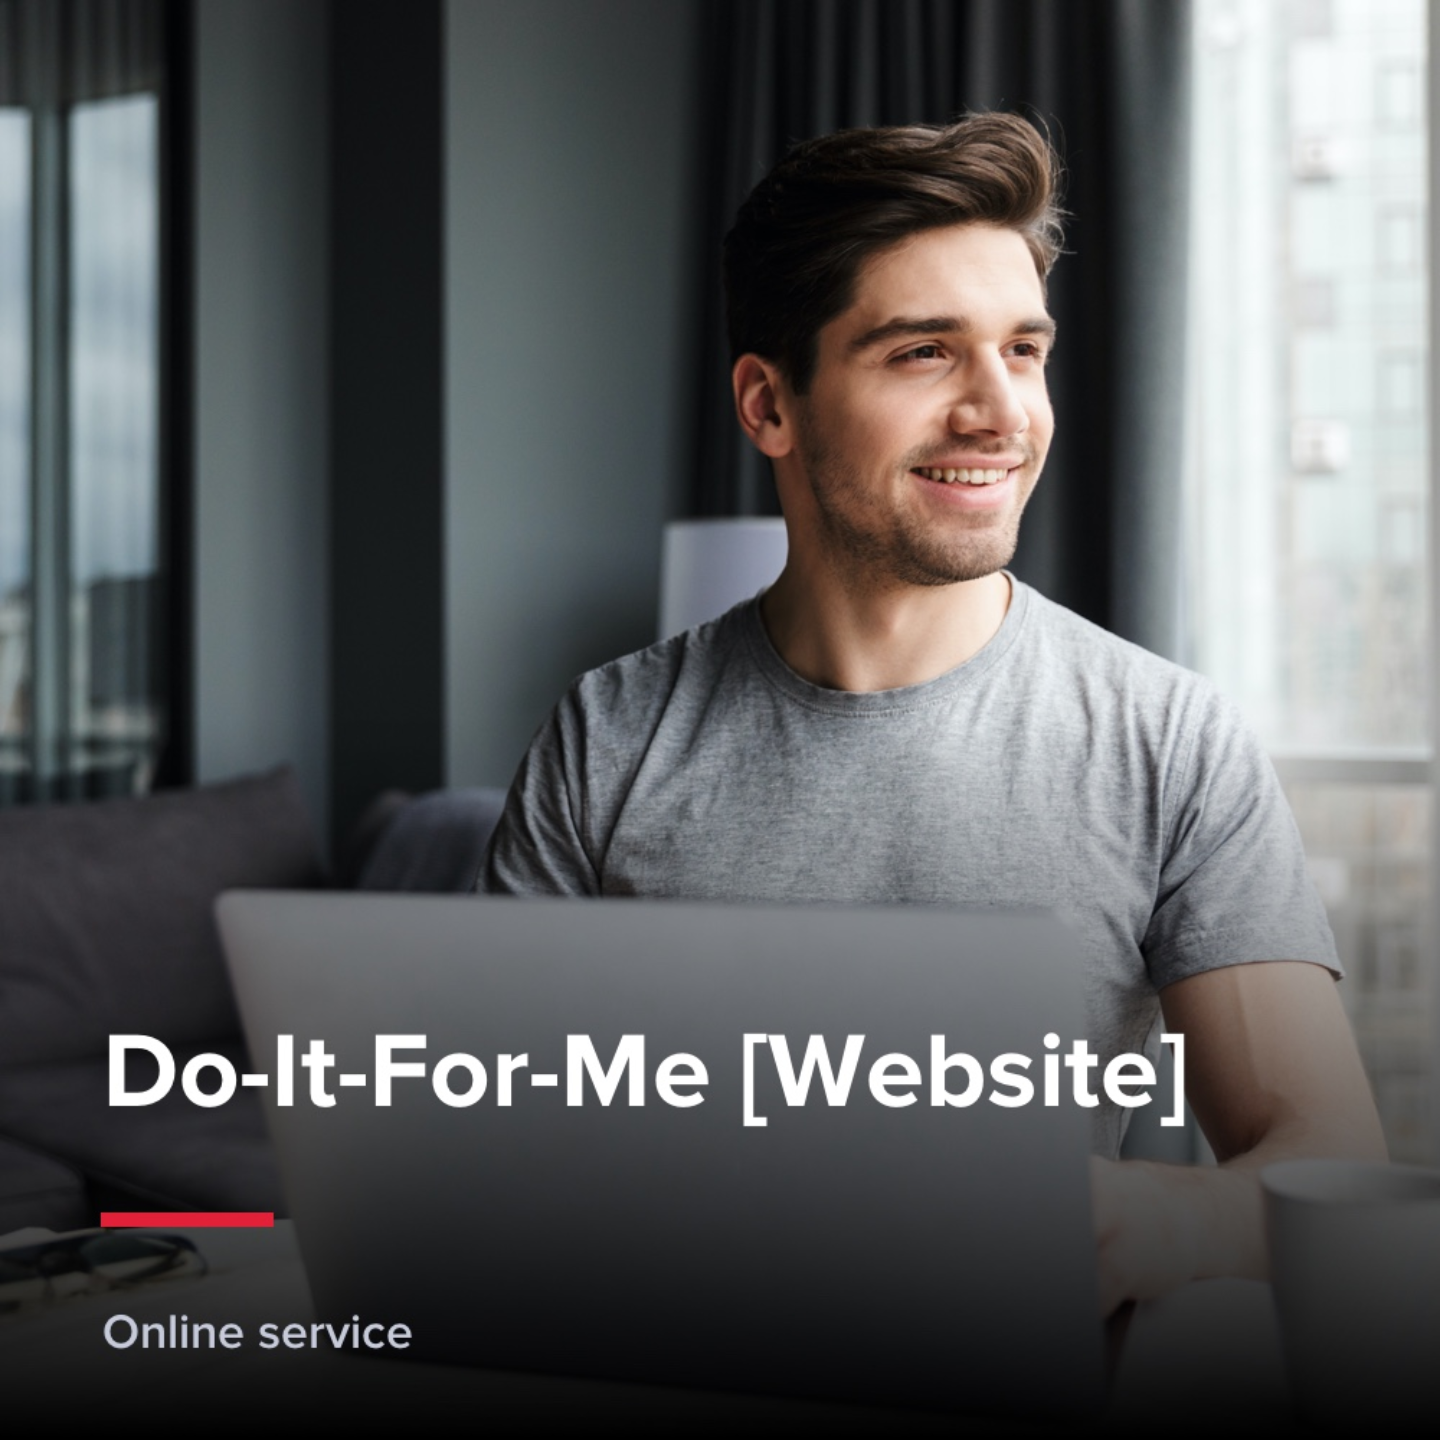 Do-It-For-Me Website